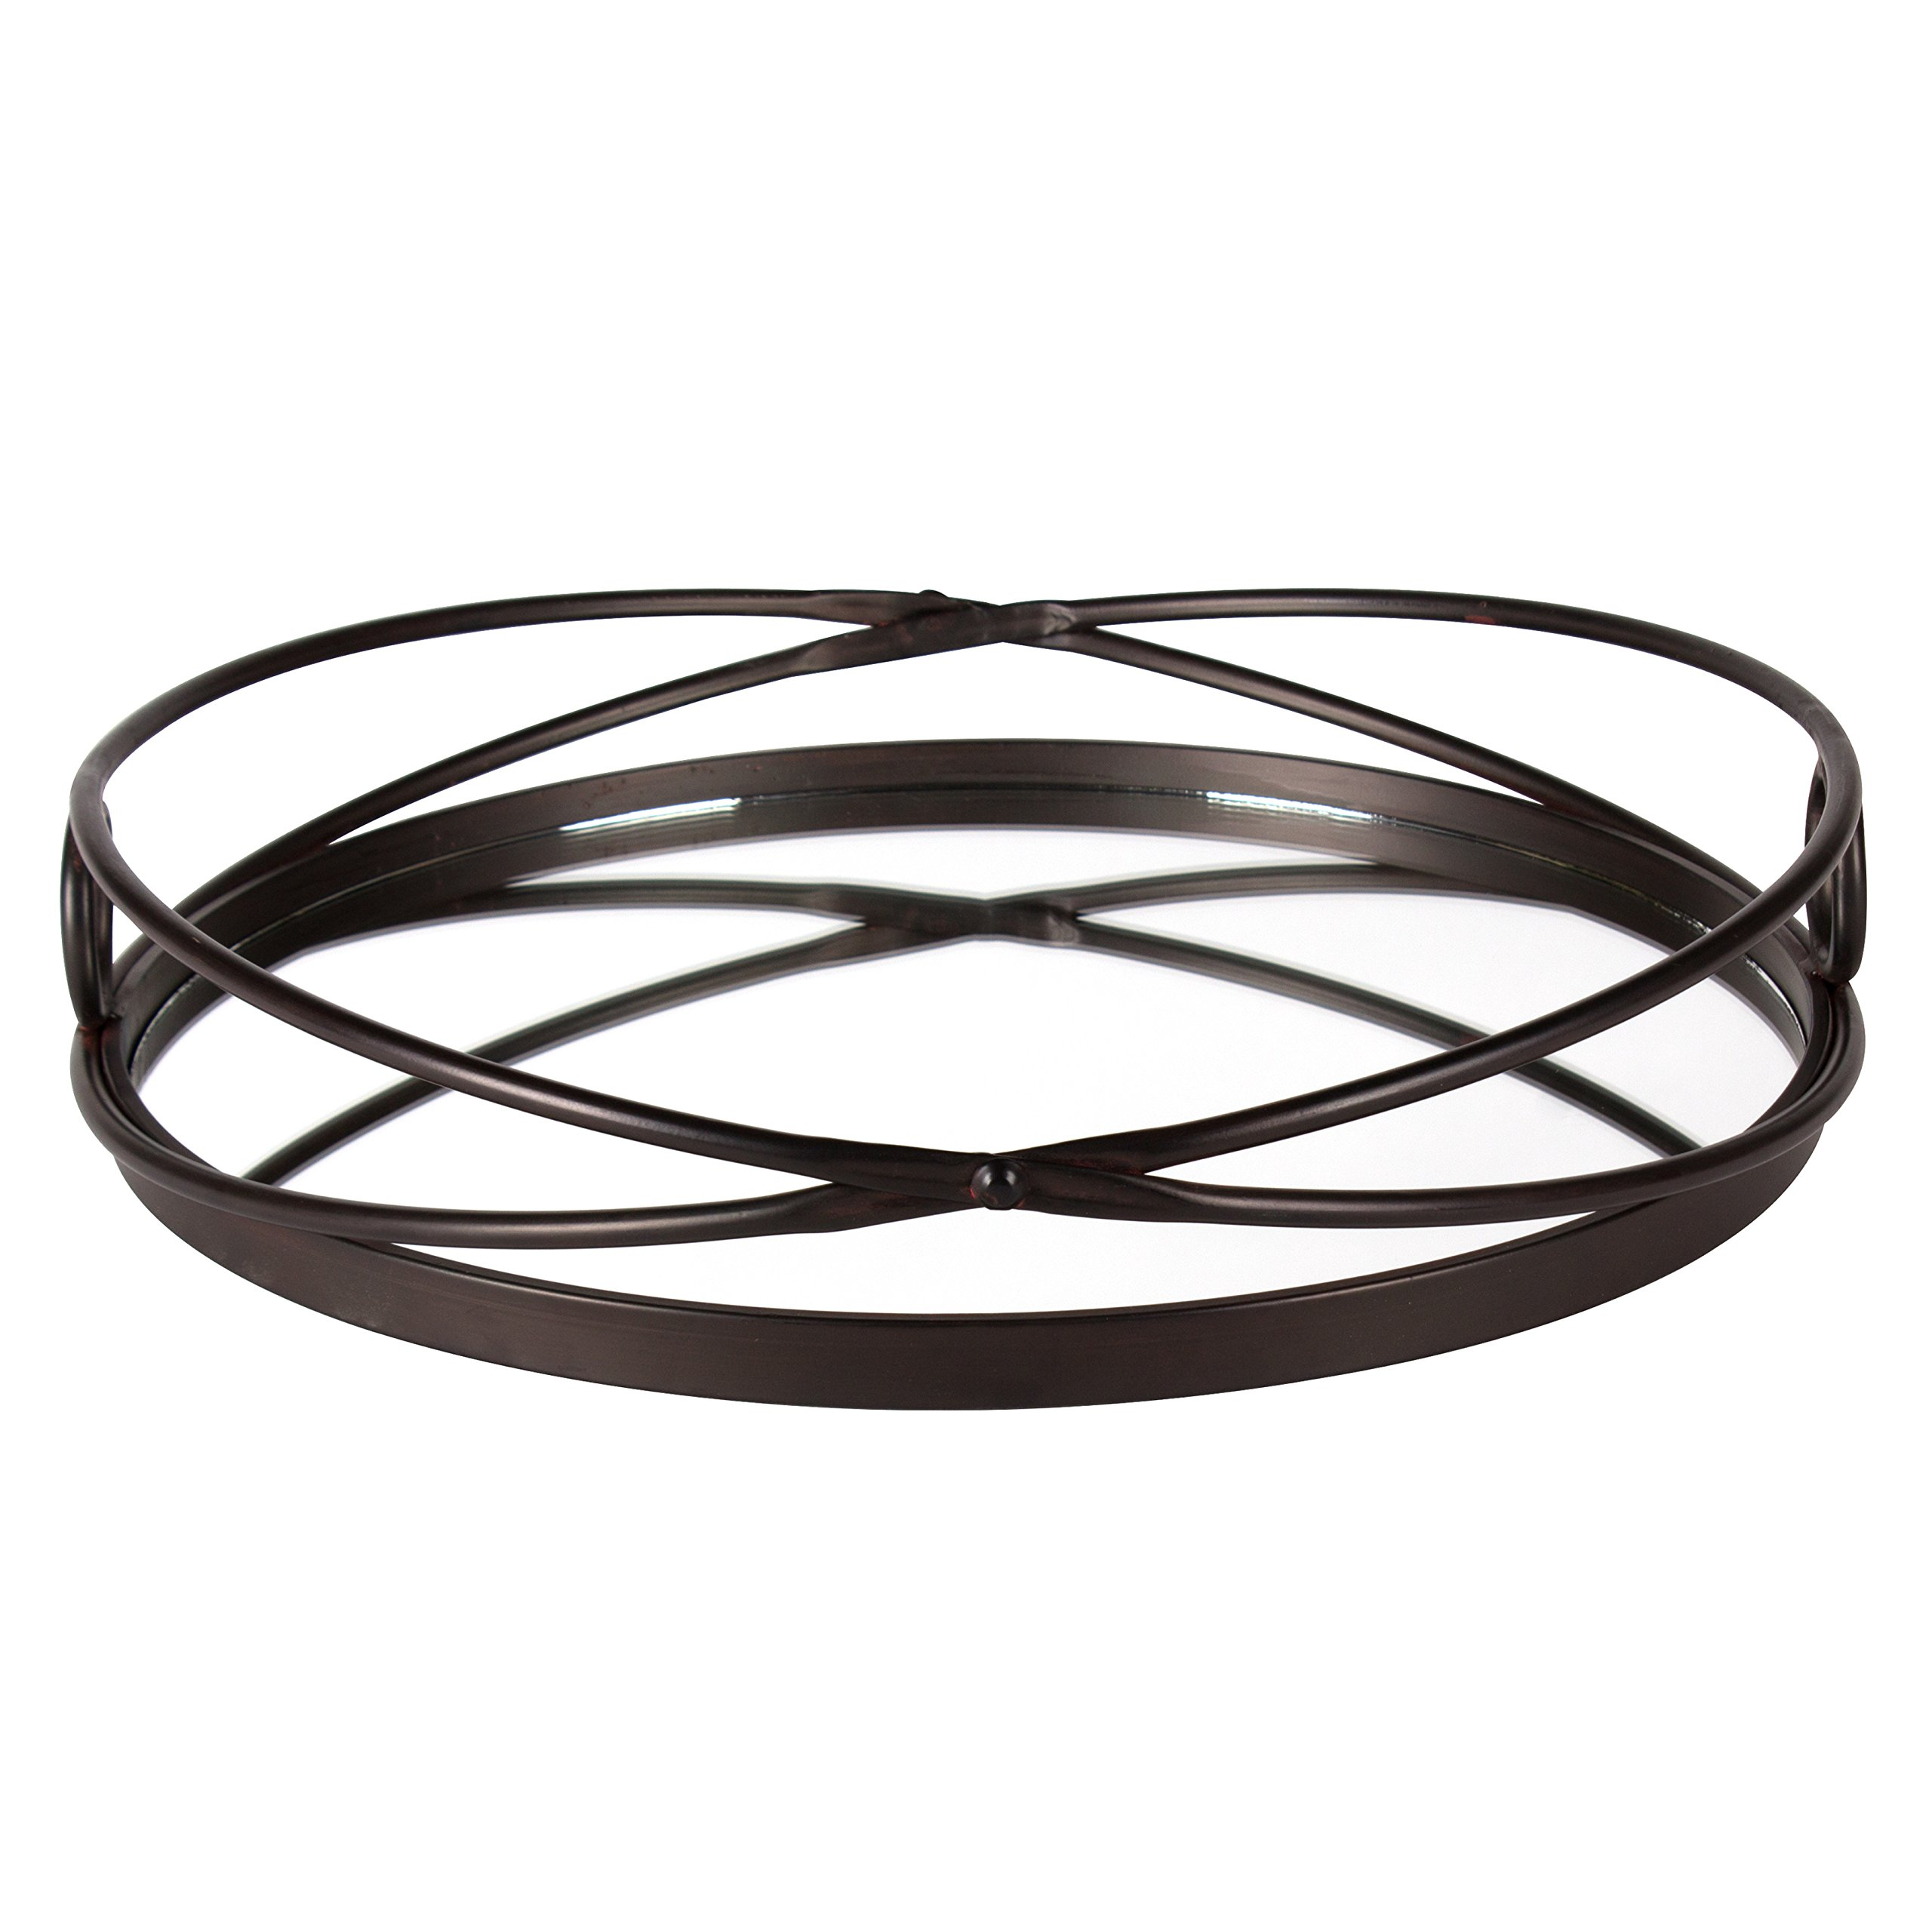 Kate and Laurel Delray Bronze Metal Mirrored Round Decorative Tray by Kate and Laurel